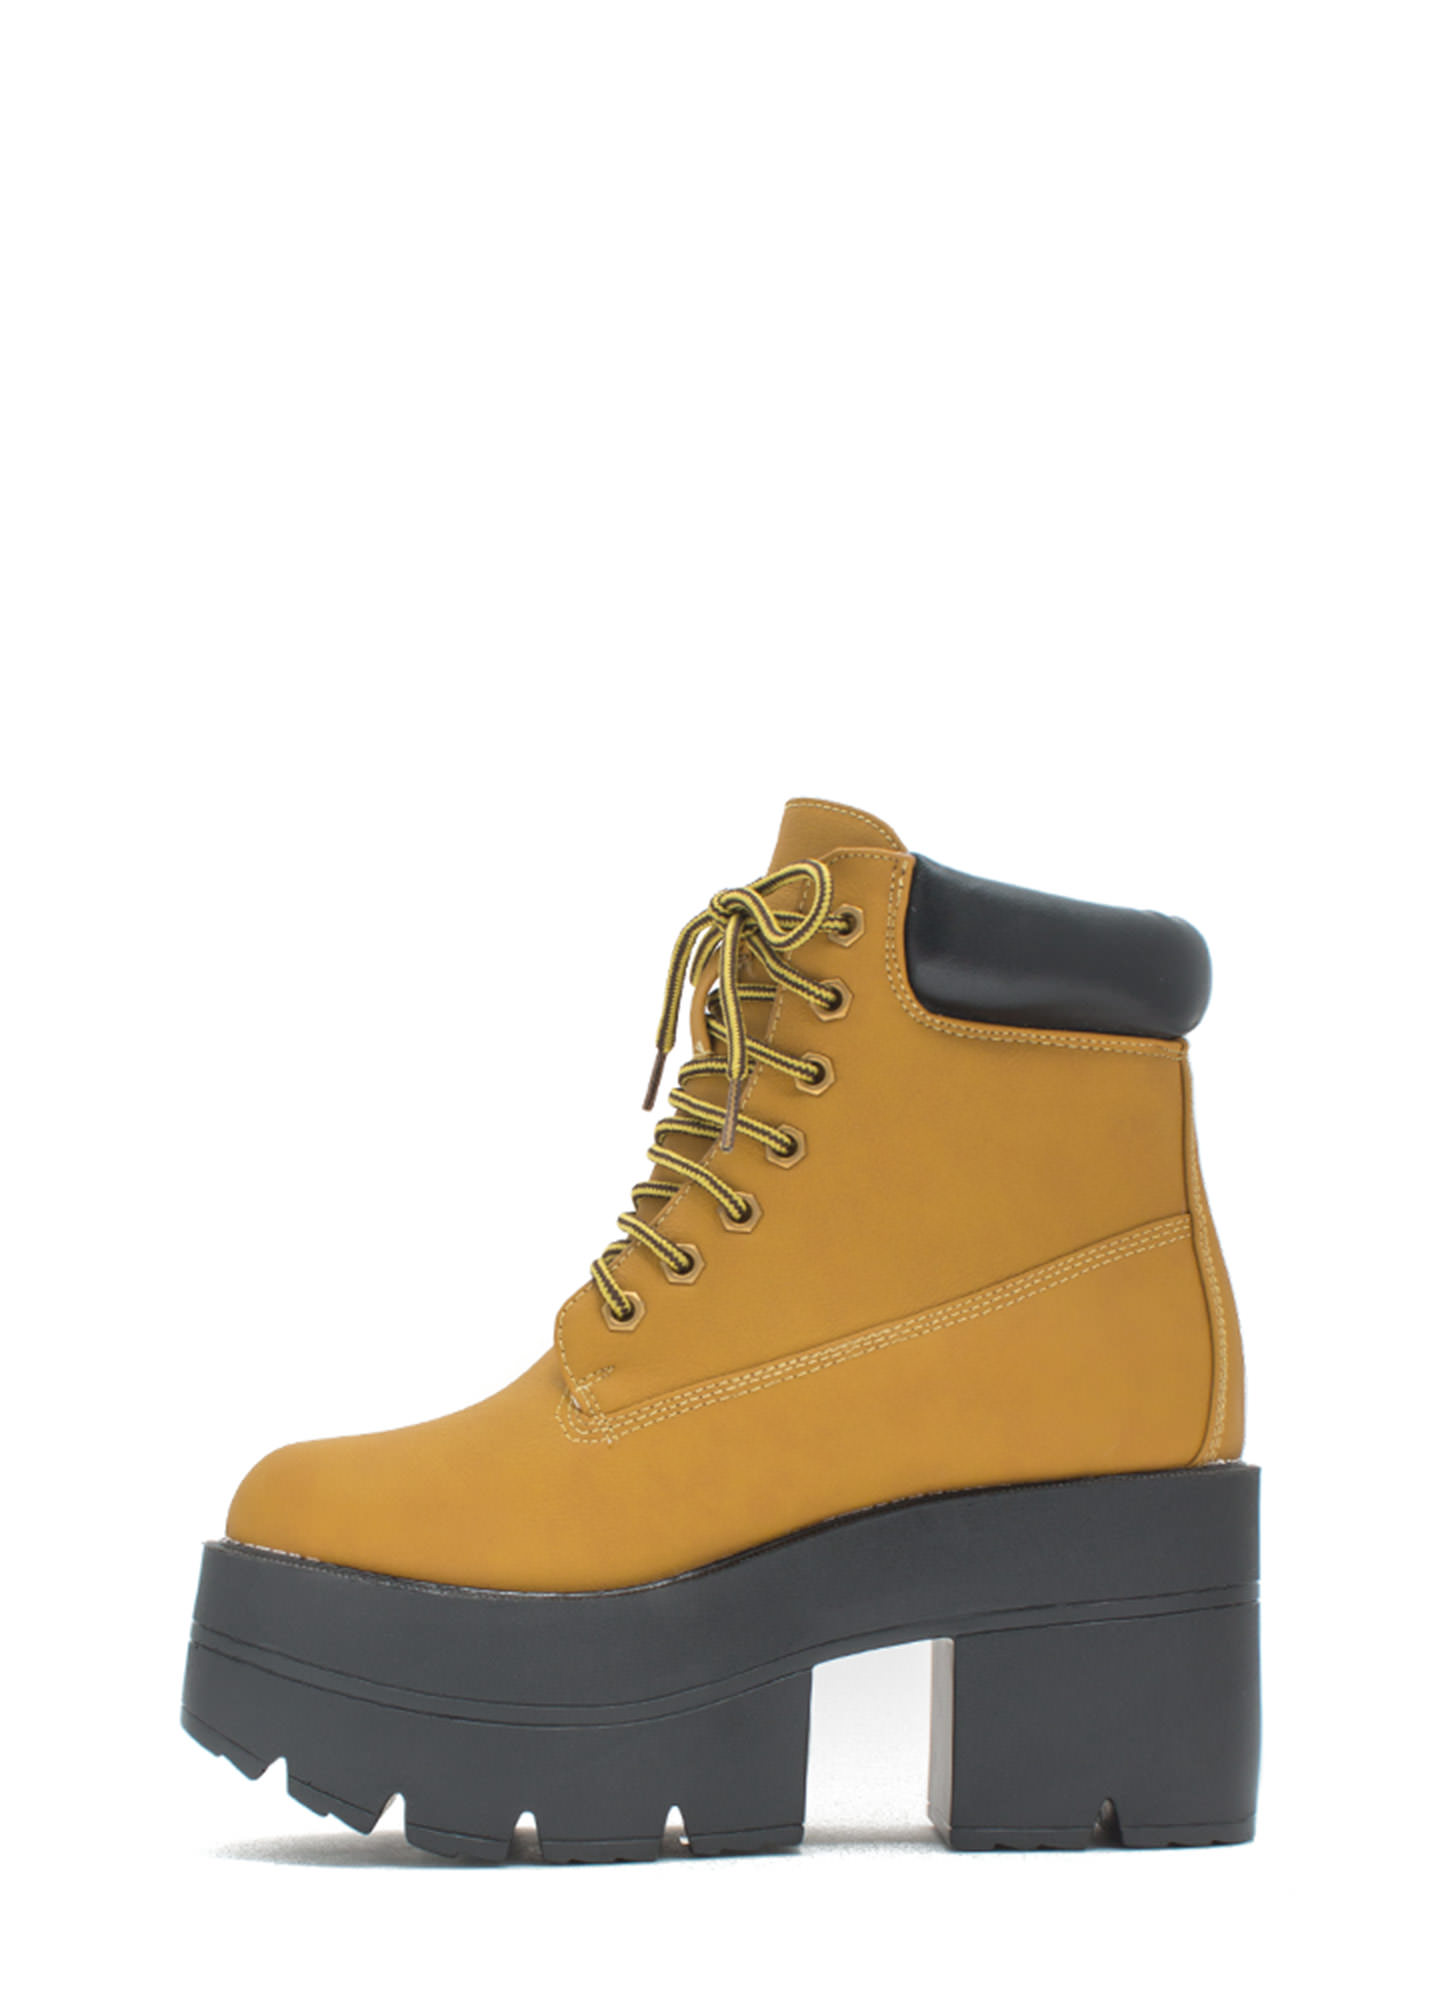 Take Over Lace-Up Platform Boots WHEAT